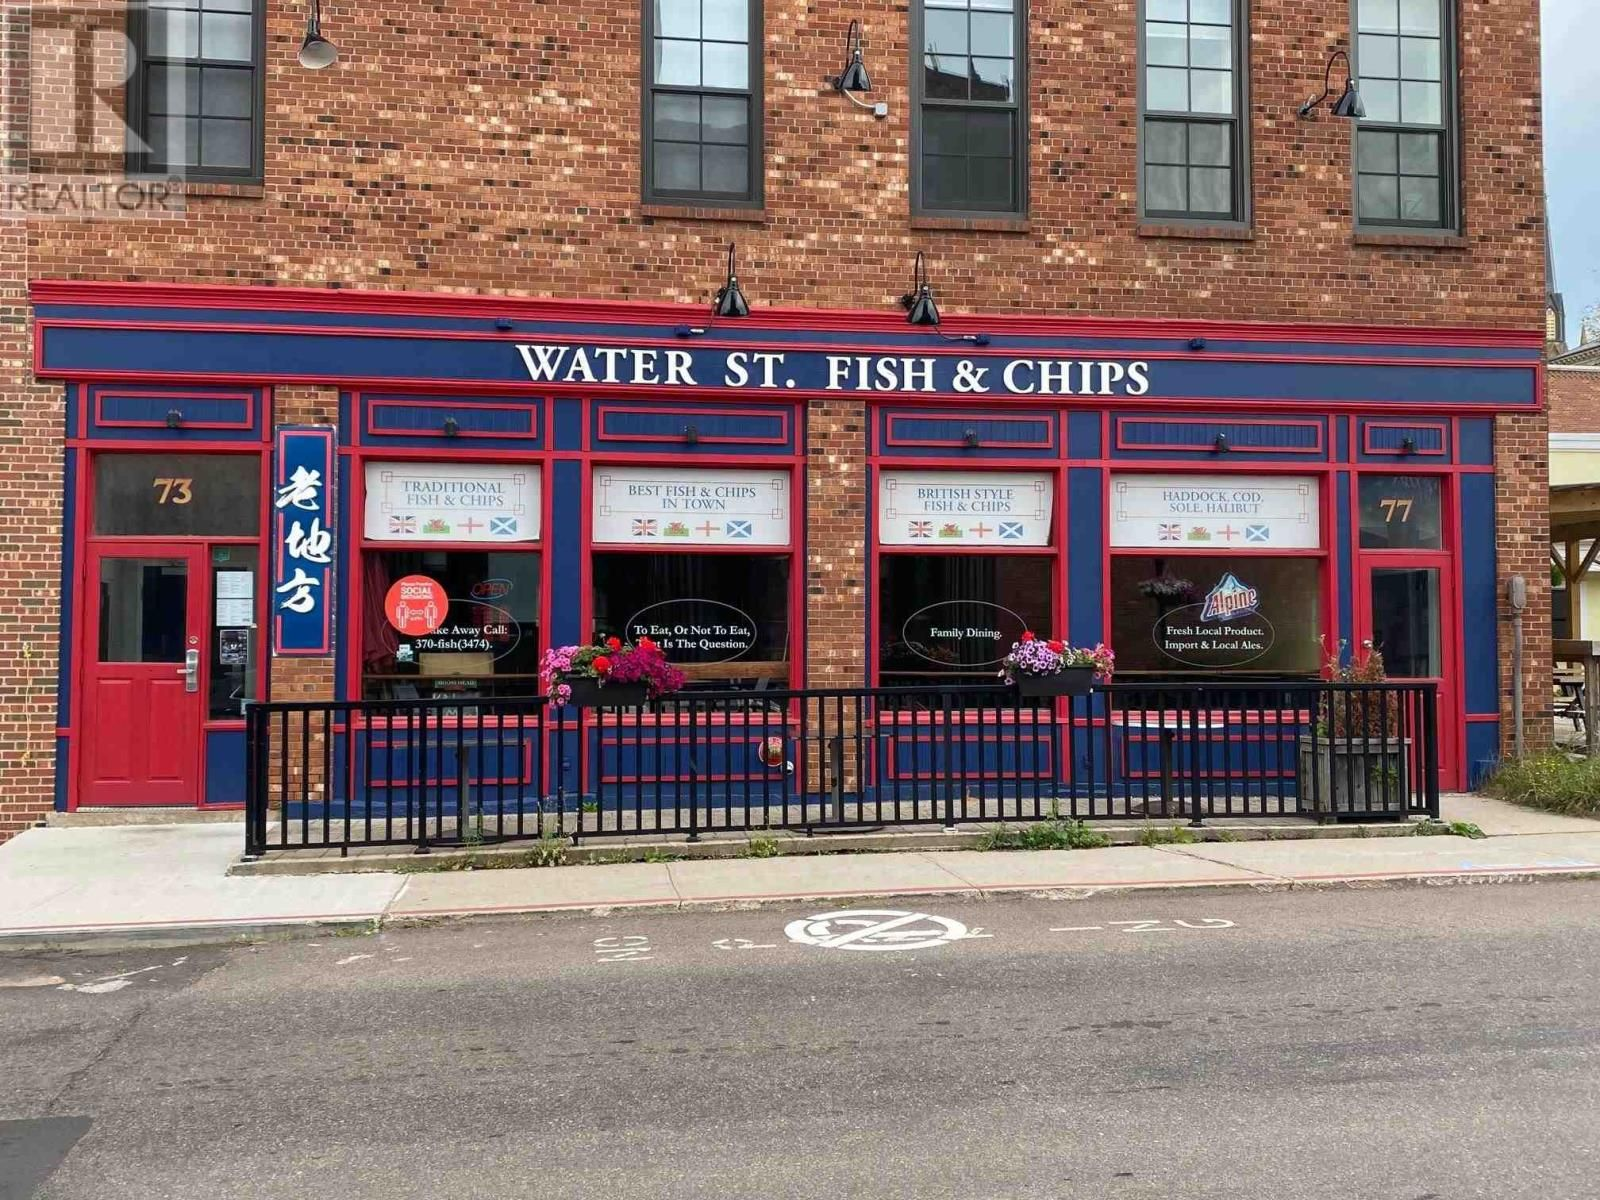 Main Photo: 73 Water Street in Charlottetown: Business for sale : MLS®# 202122131